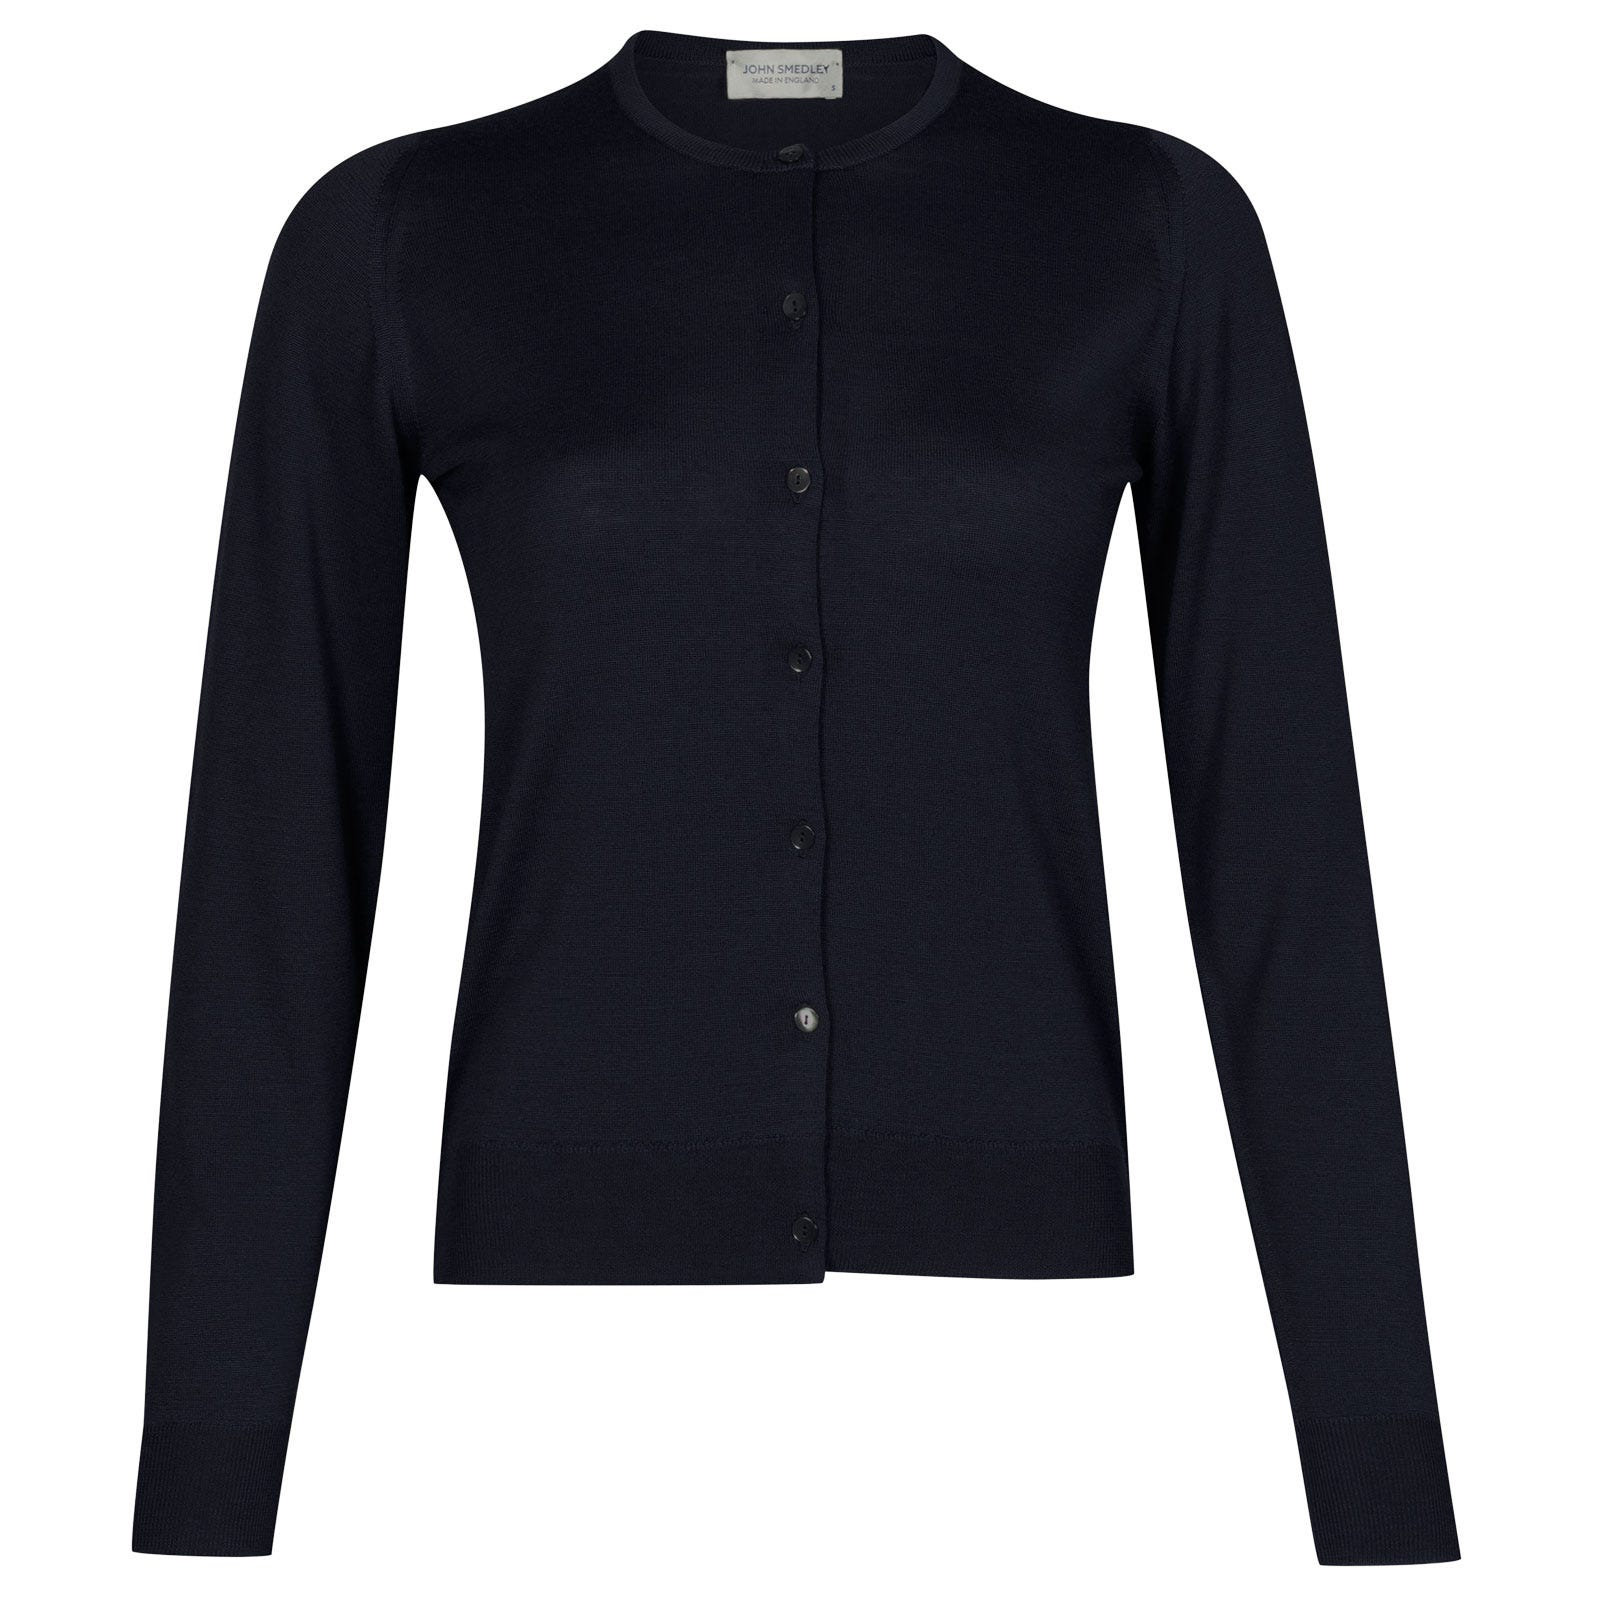 John Smedley florence Merino Wool Cardigan in Midnight-L